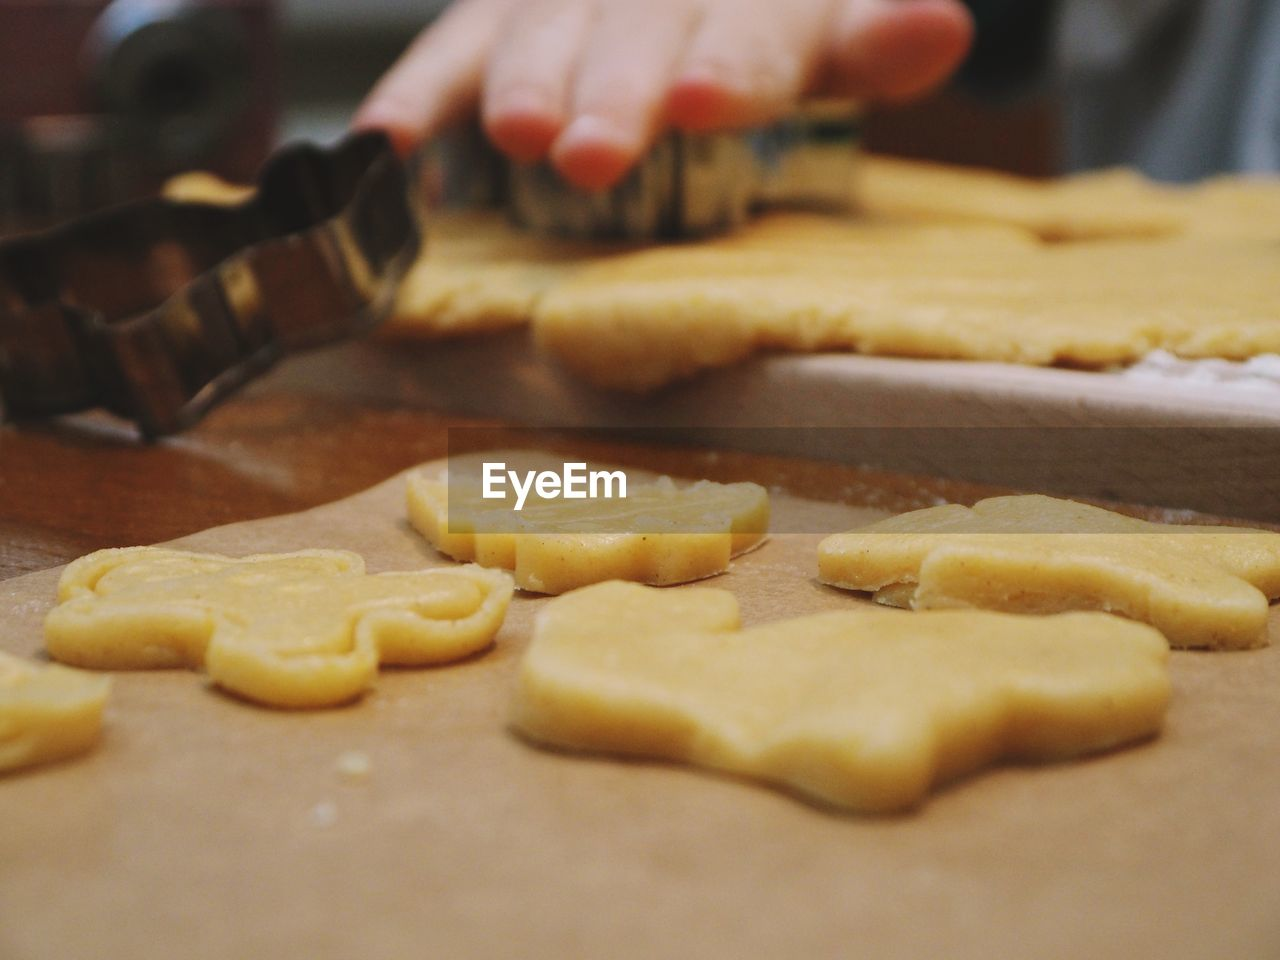 preparation, food, food and drink, dough, freshness, preparing food, indoors, baked, human hand, human body part, hand, cookie, selective focus, one person, close-up, sweet food, table, raw food, making, finger, baking sheet